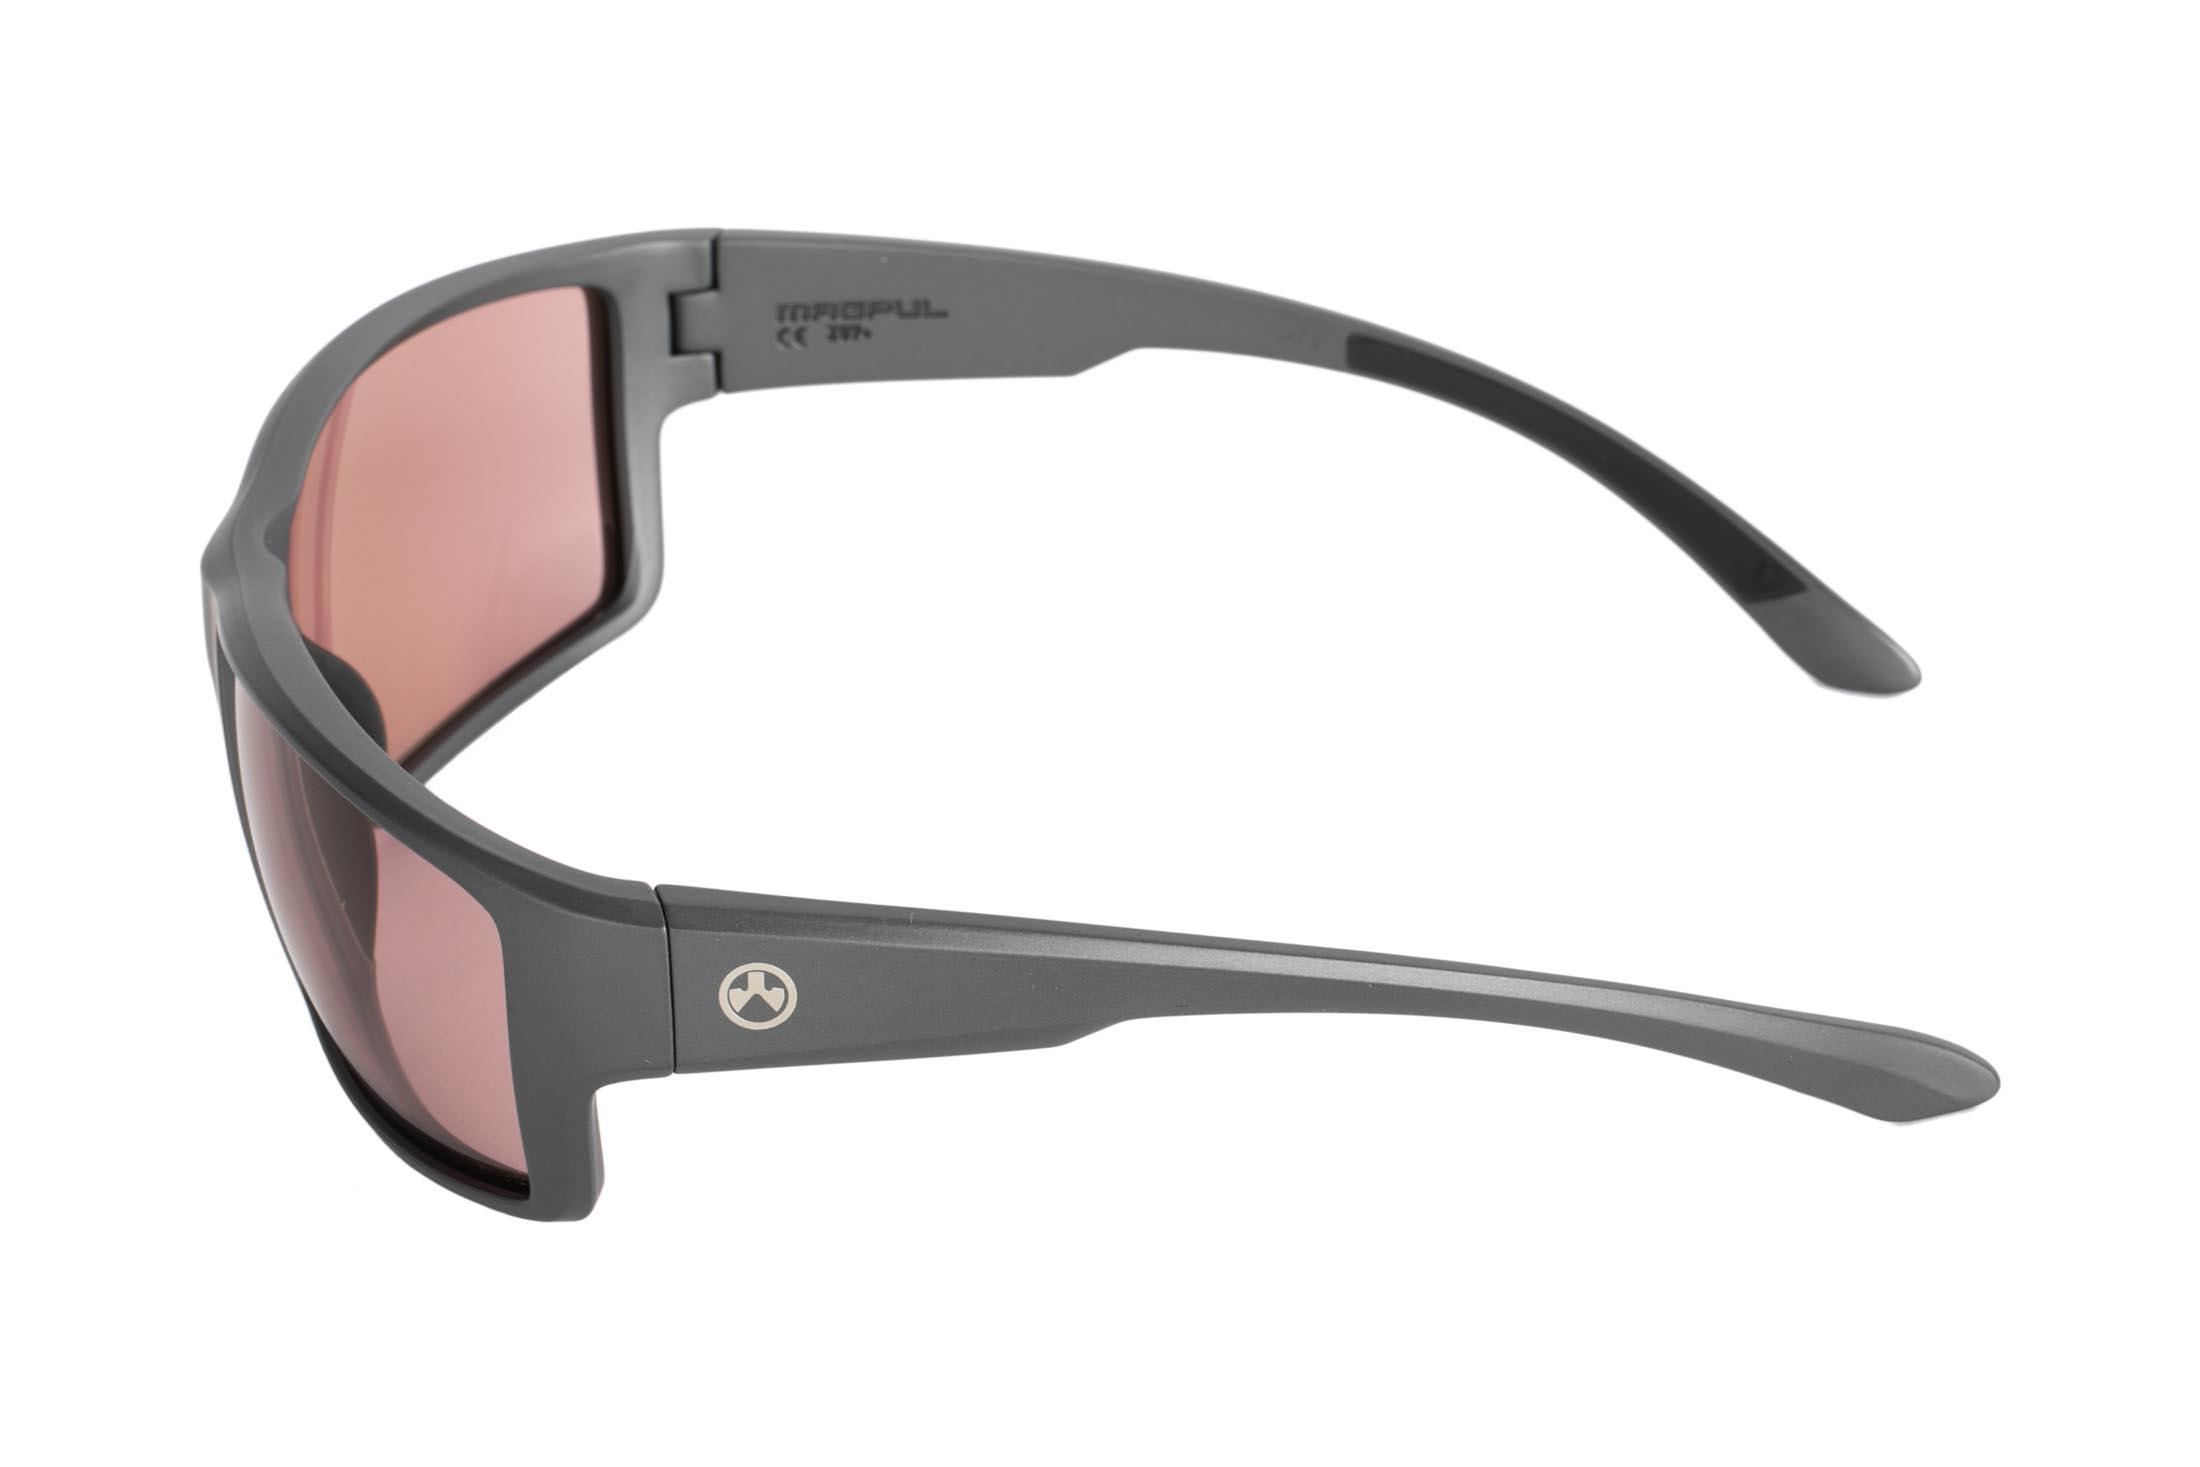 Magpul gray frame Terrain sunglasses with rose lenses are stylish, yet Z87+ and MIL-PRF 32432 ballistic rated